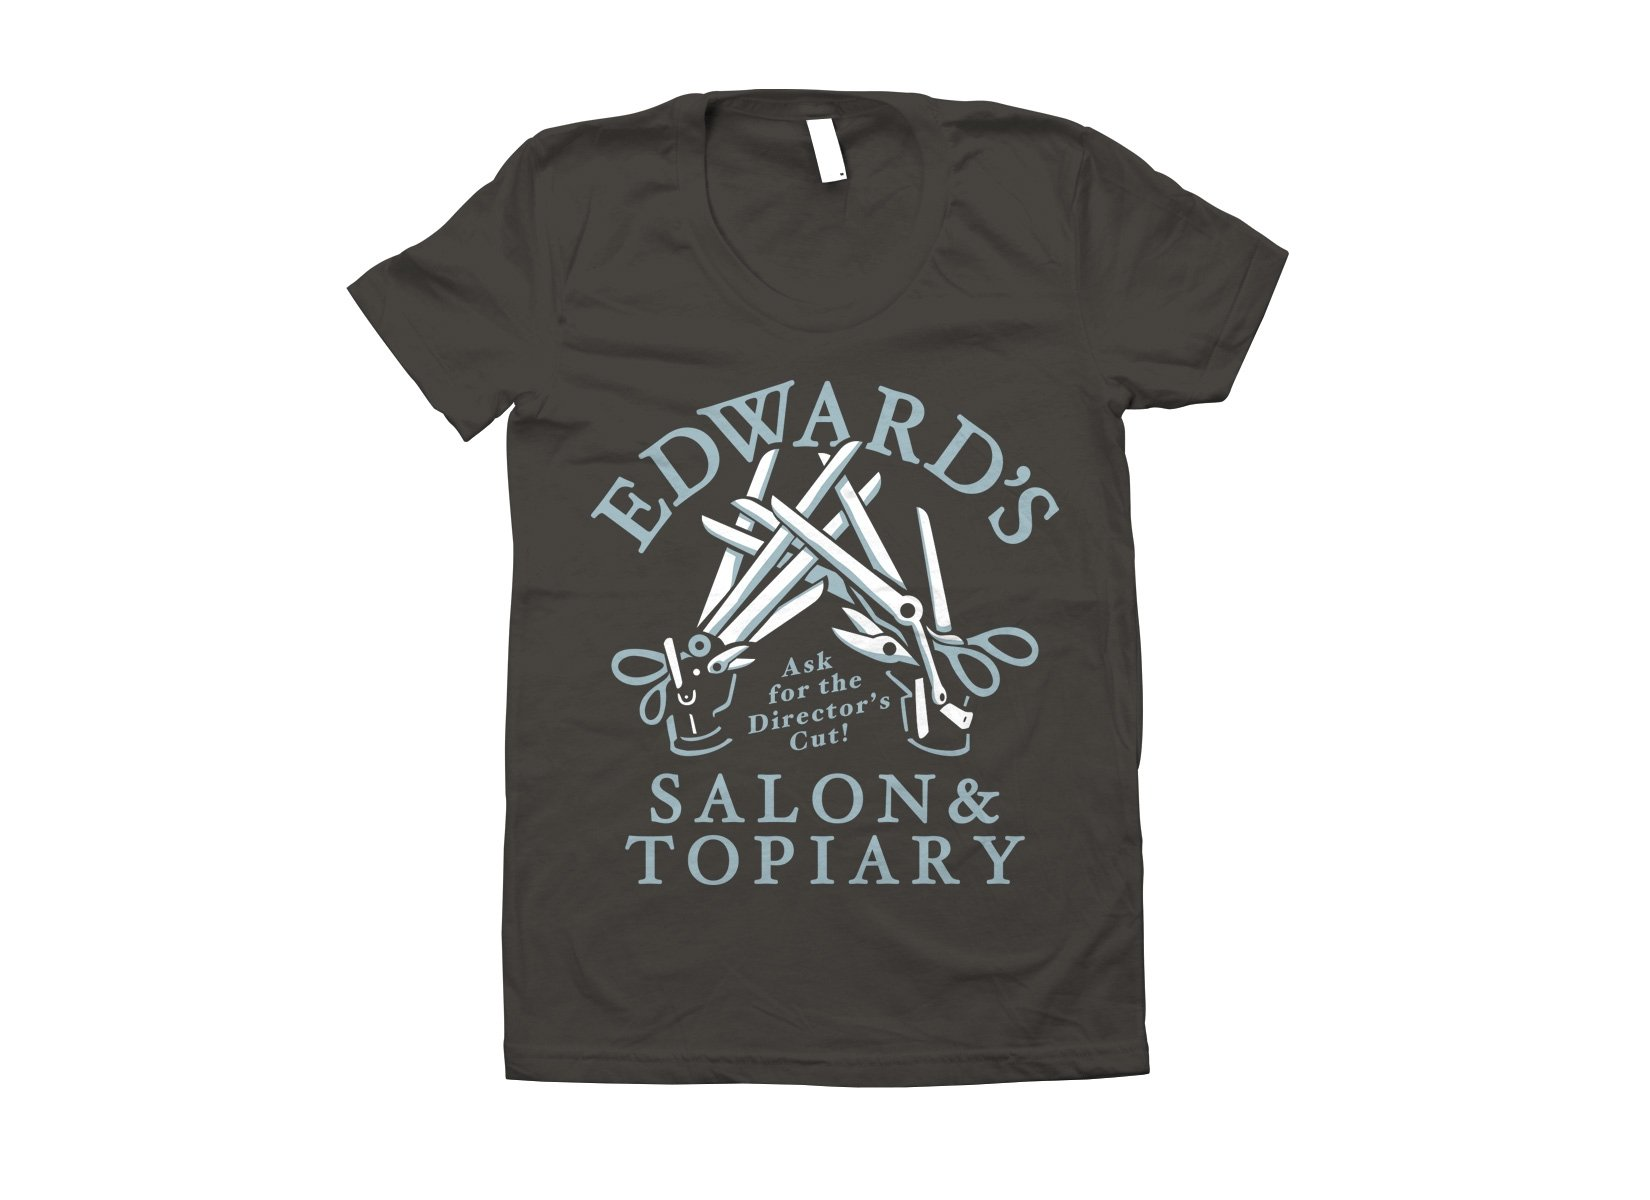 Edward's Salon and Topiary on Juniors T-Shirt